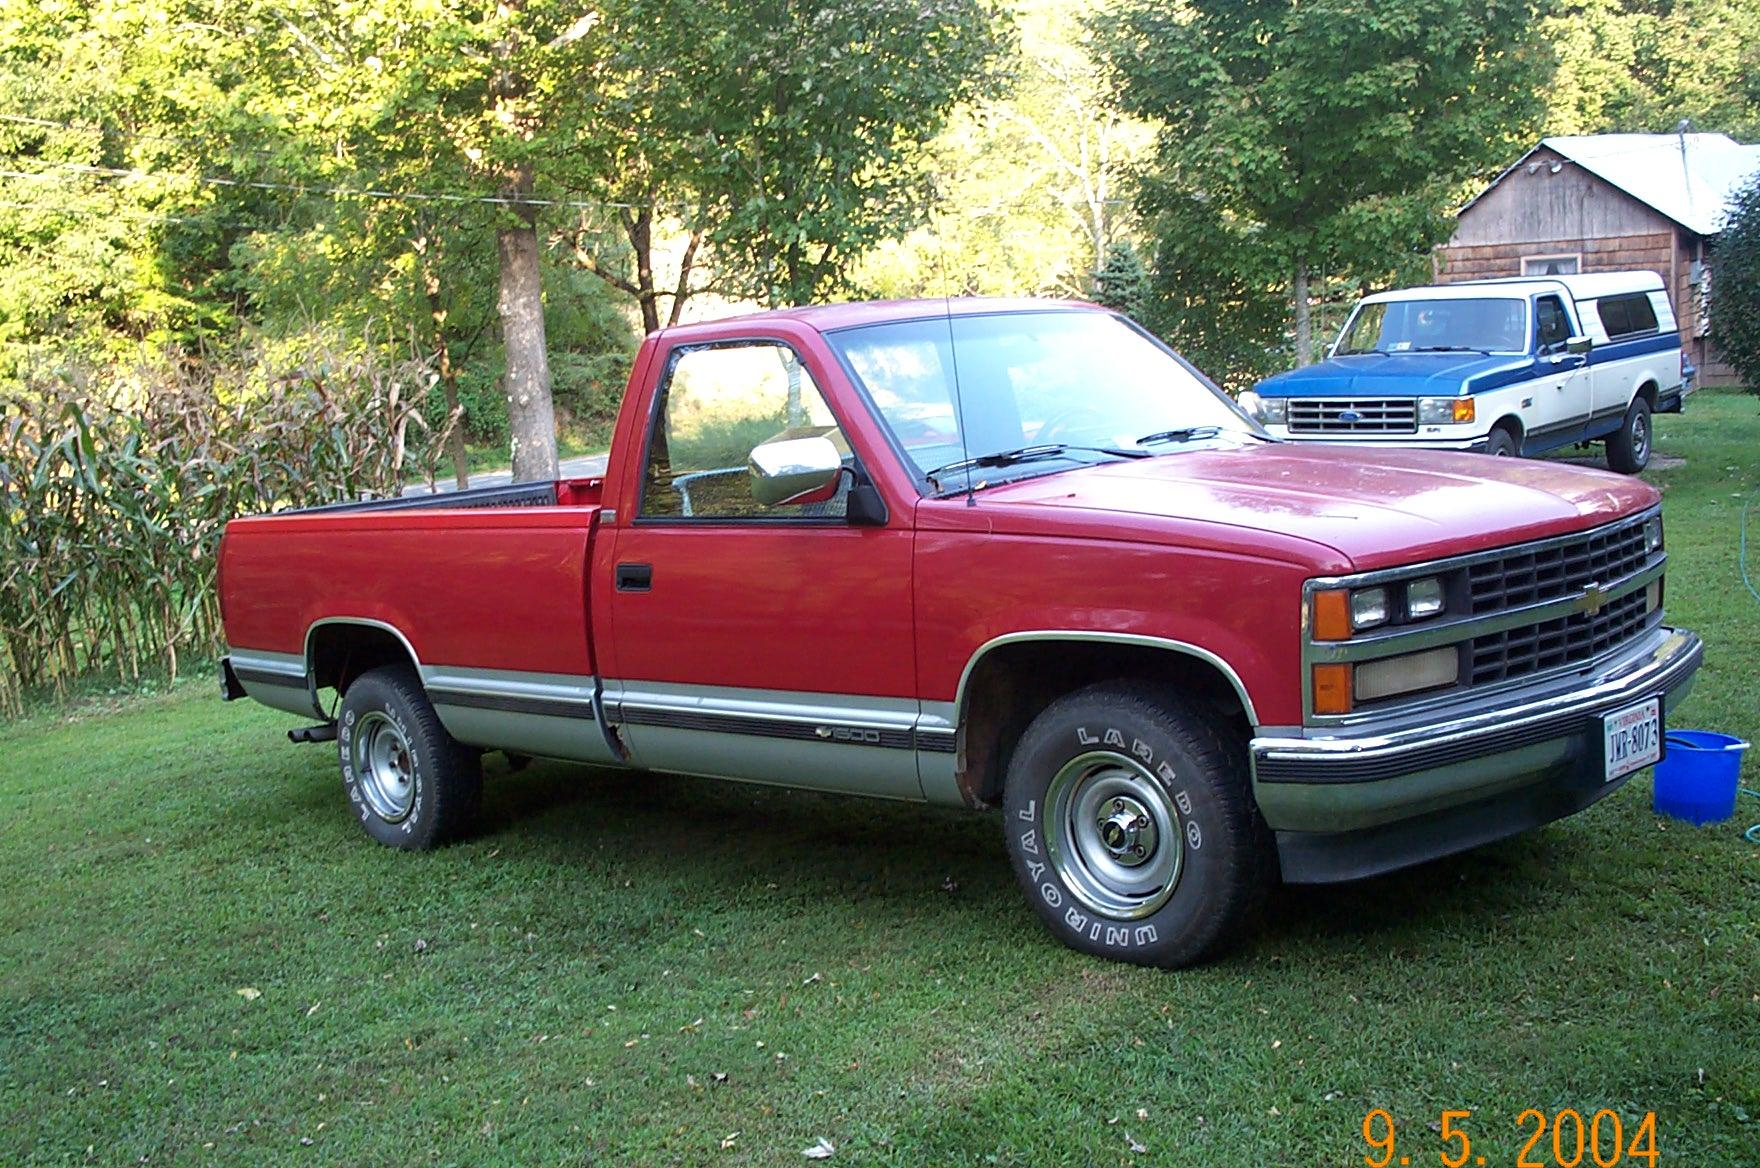 krt80 1988 Chevrolet 1500 Regular Cab Specs, Photos ...